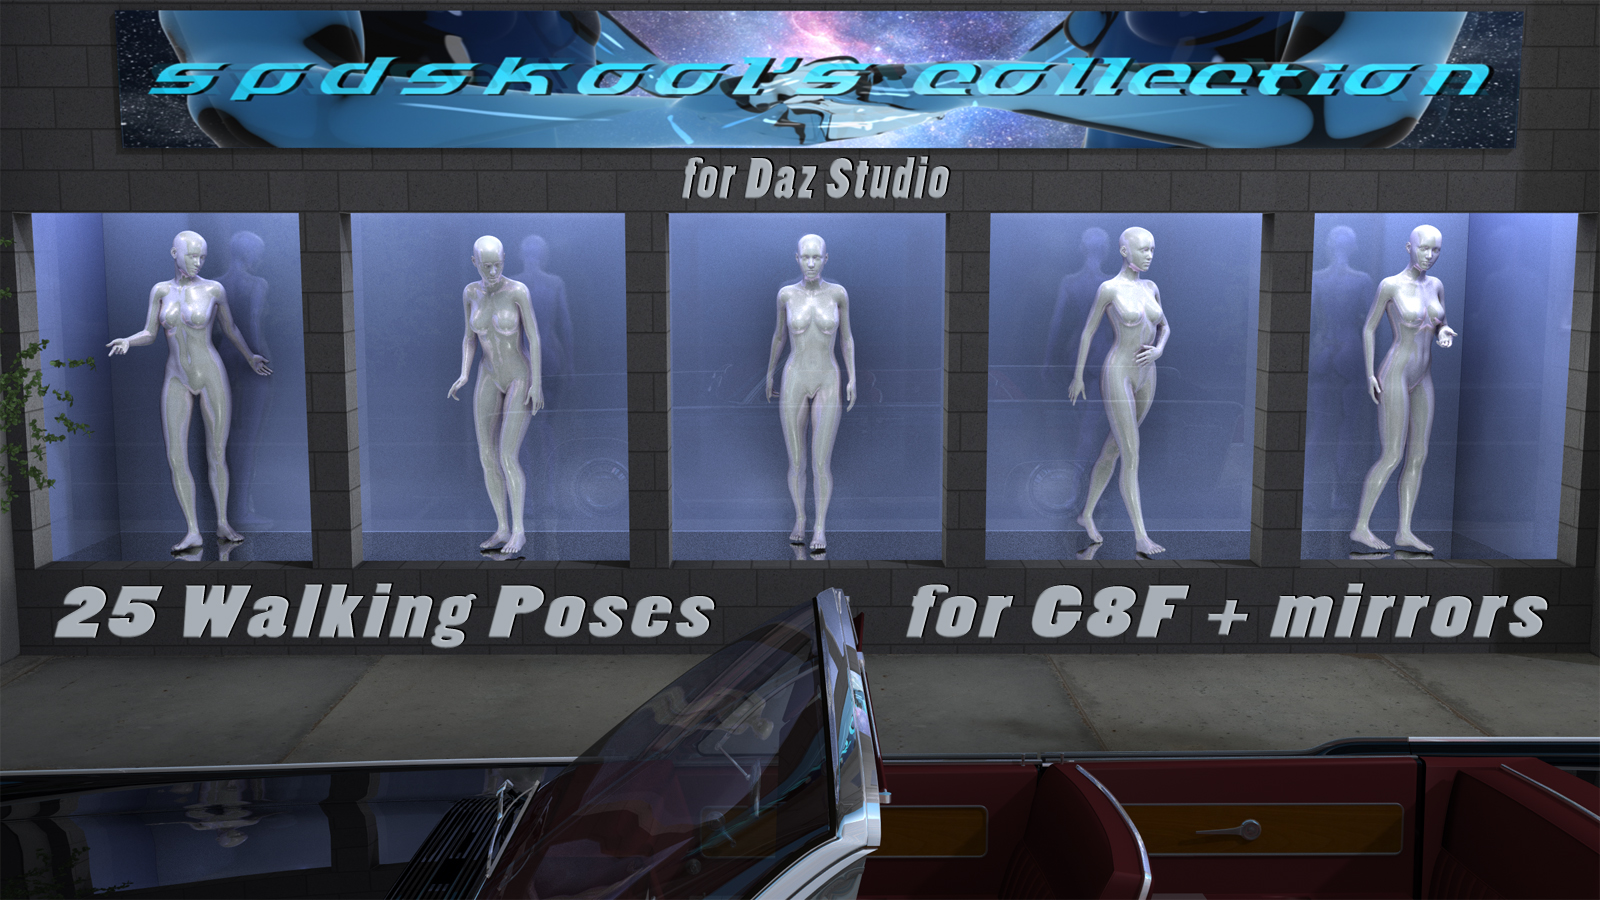 25 Walking Poses for G8F by spdskool